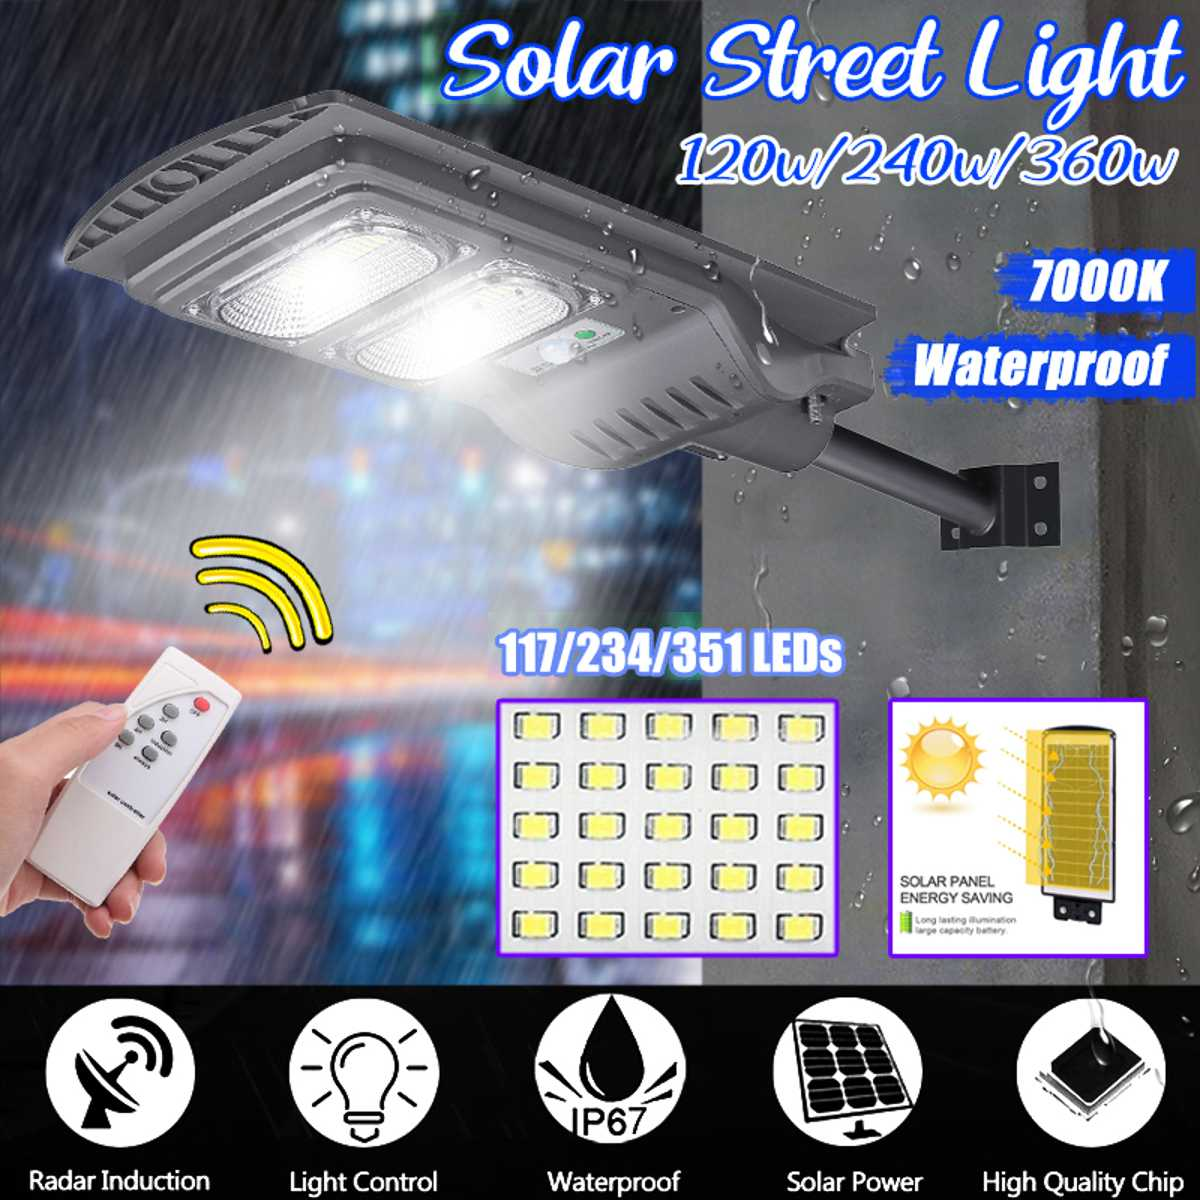 Smuxi 360W/240W/120W LED Gray IP65 Solar Street Light  Motion Constantly Bright Induction Solar Sensor Remote Control